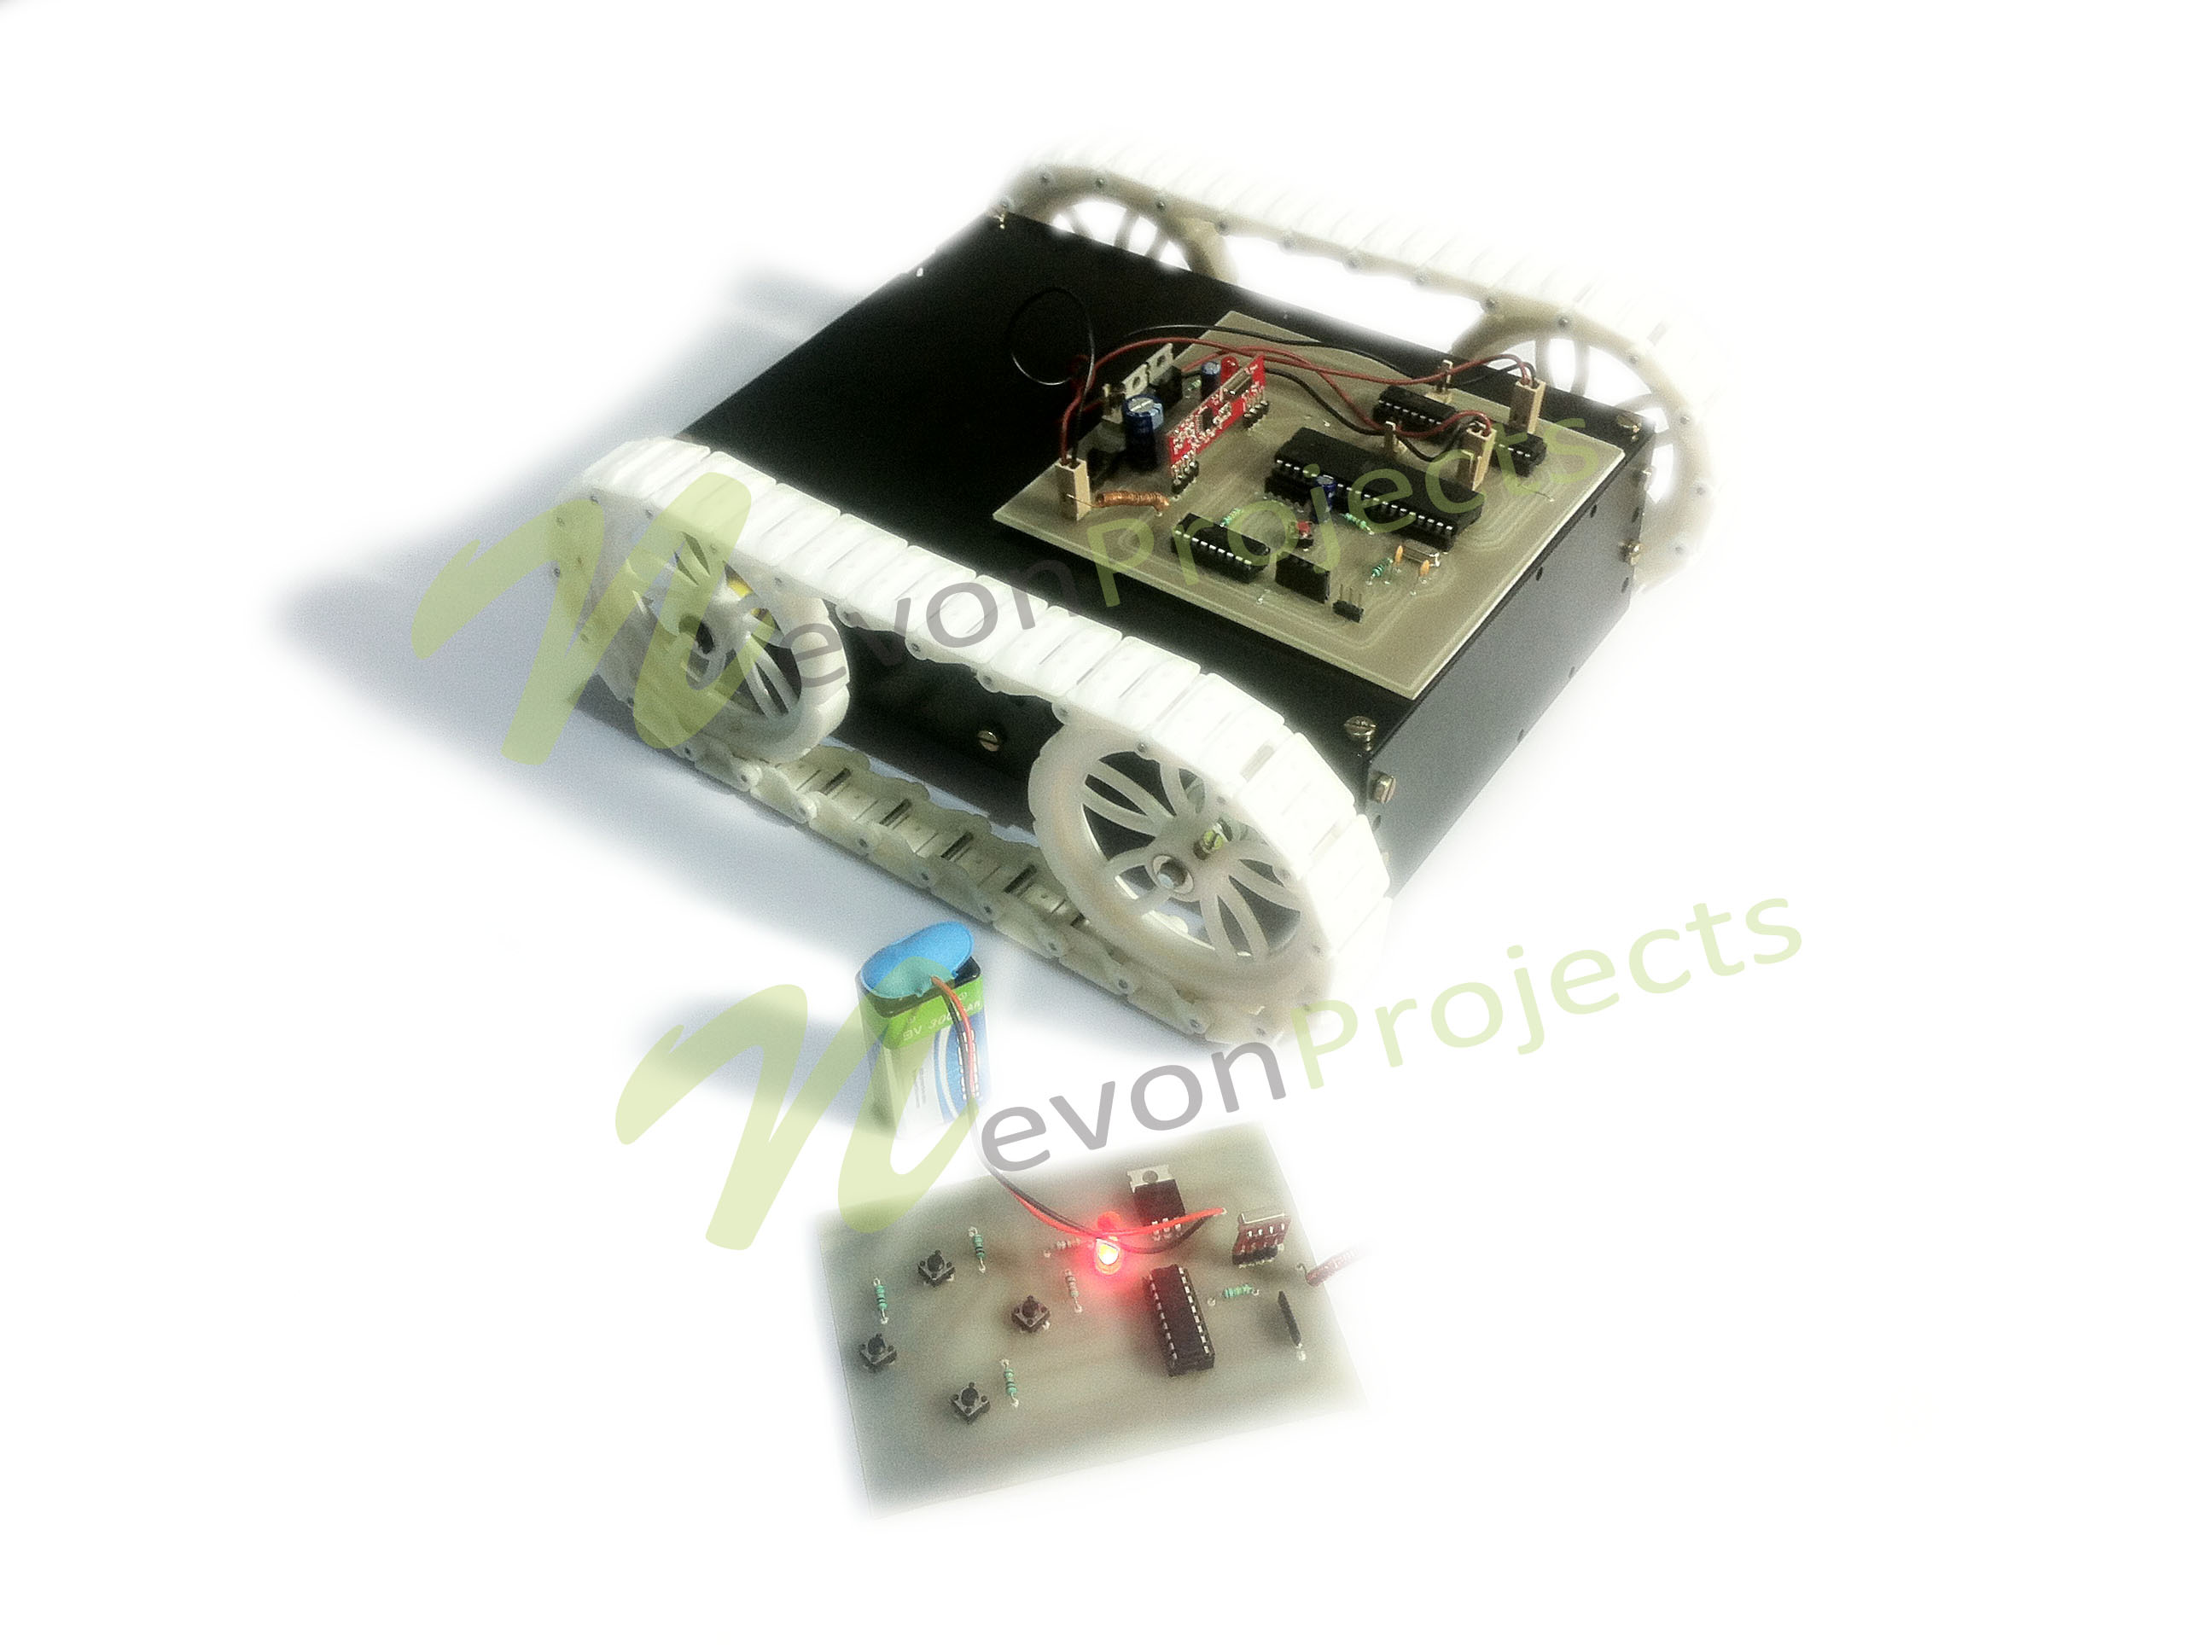 Remote Controlled Automobile Using Rf Nevonprojects Schematics Tutorials Downloads Contact 2 Channel Avr Control Based Home Automation Project